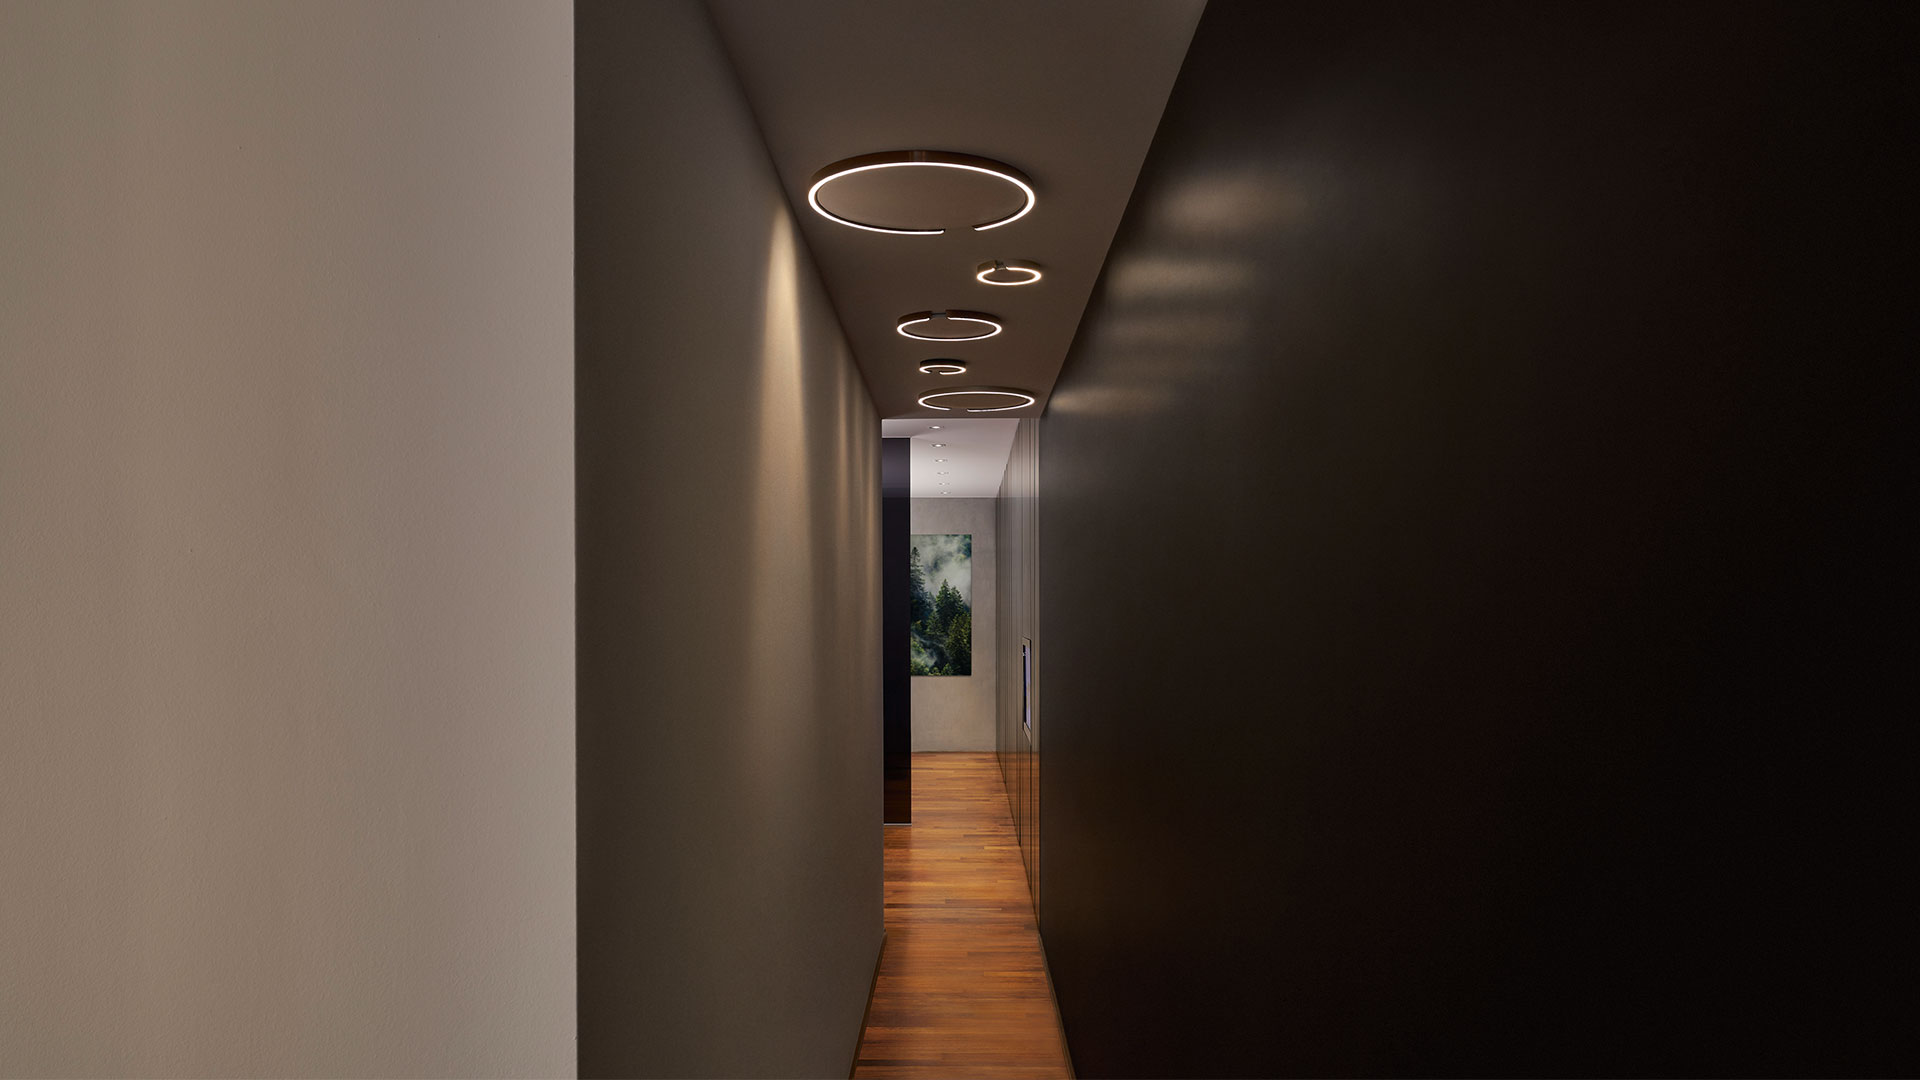 Mito soffitto bronze Flur